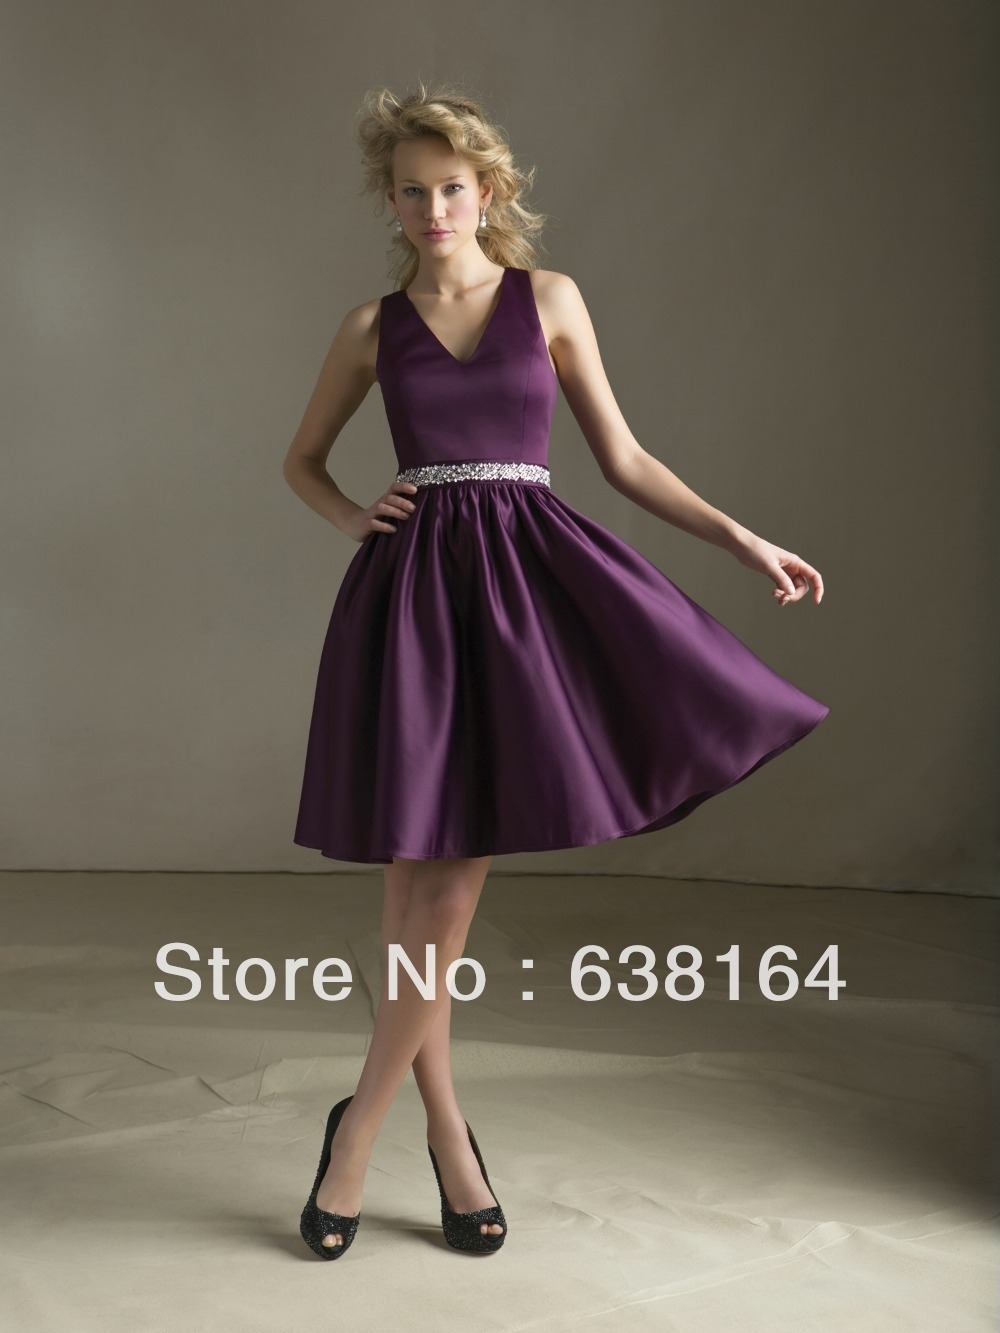 Gothic bridesmaid dresses images braidsmaid dress cocktail gothic v neck a line beaded cheap purple satin mini short gothic v neck a line ombrellifo Images